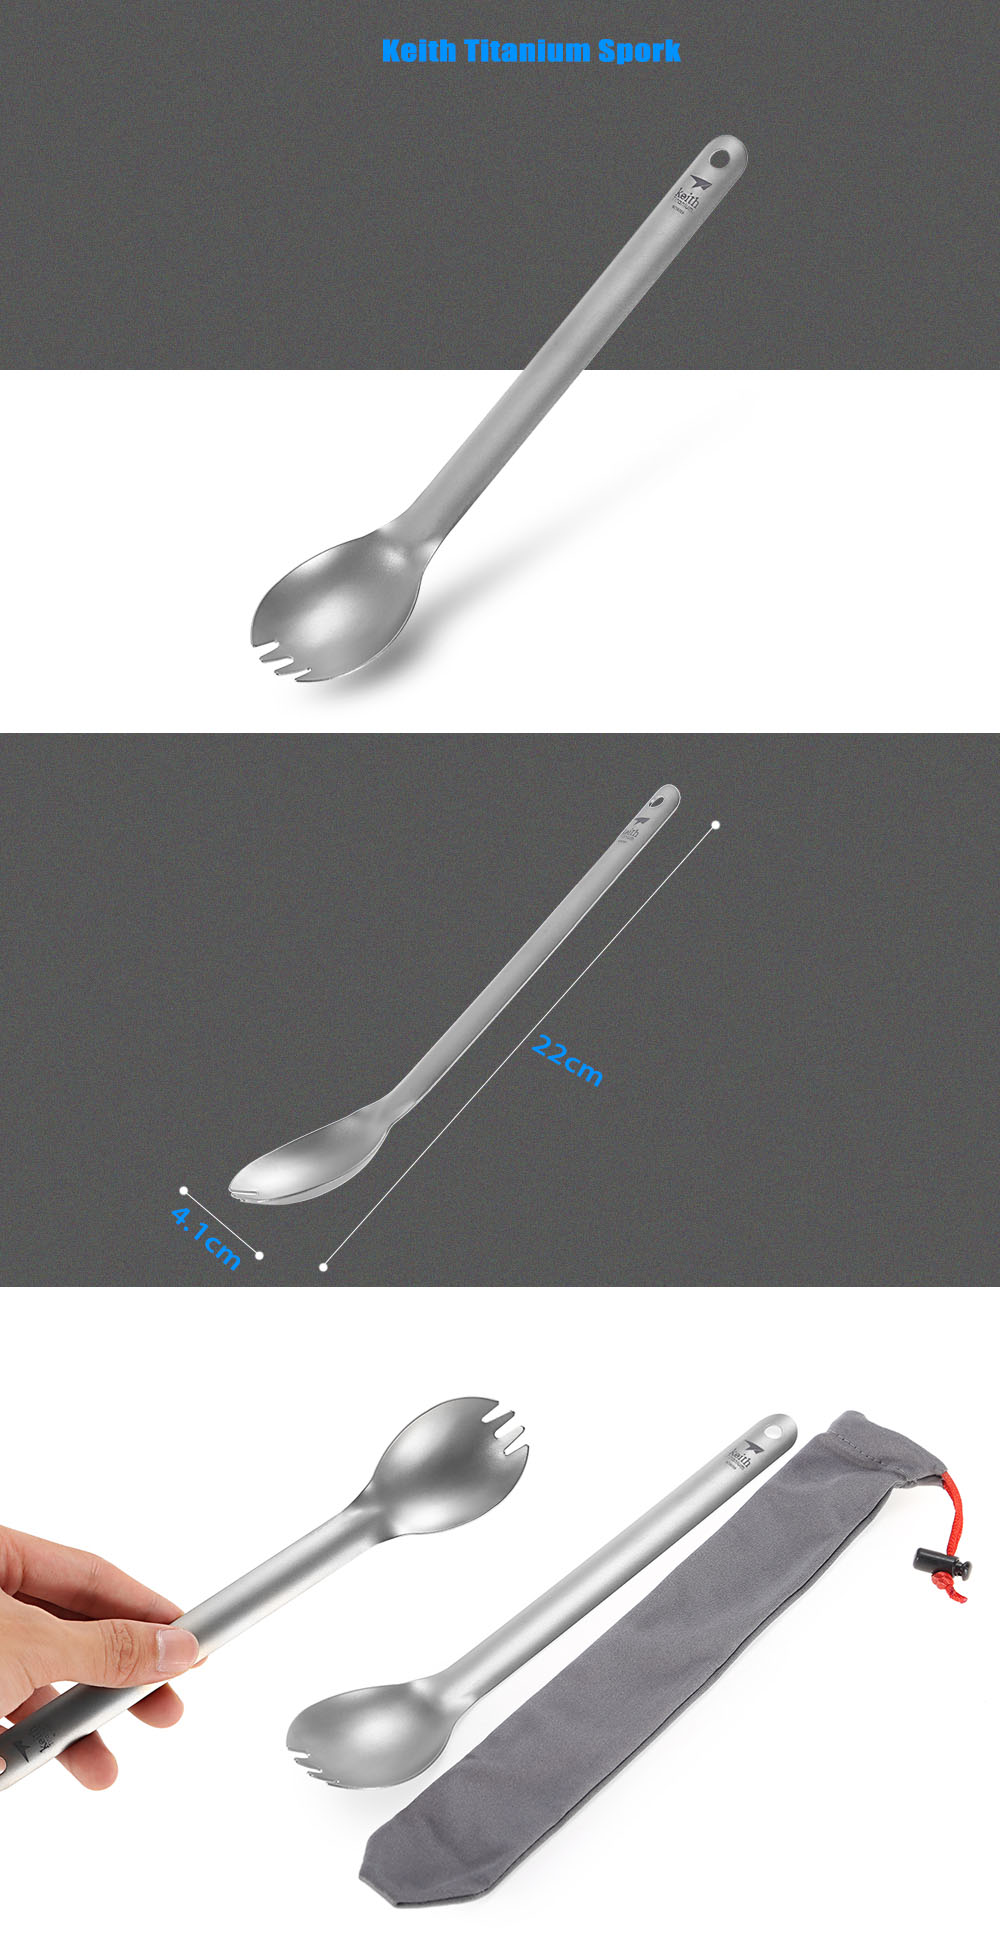 Keith Ti5319 Portable Titanium Spork Spoon with Long Handle